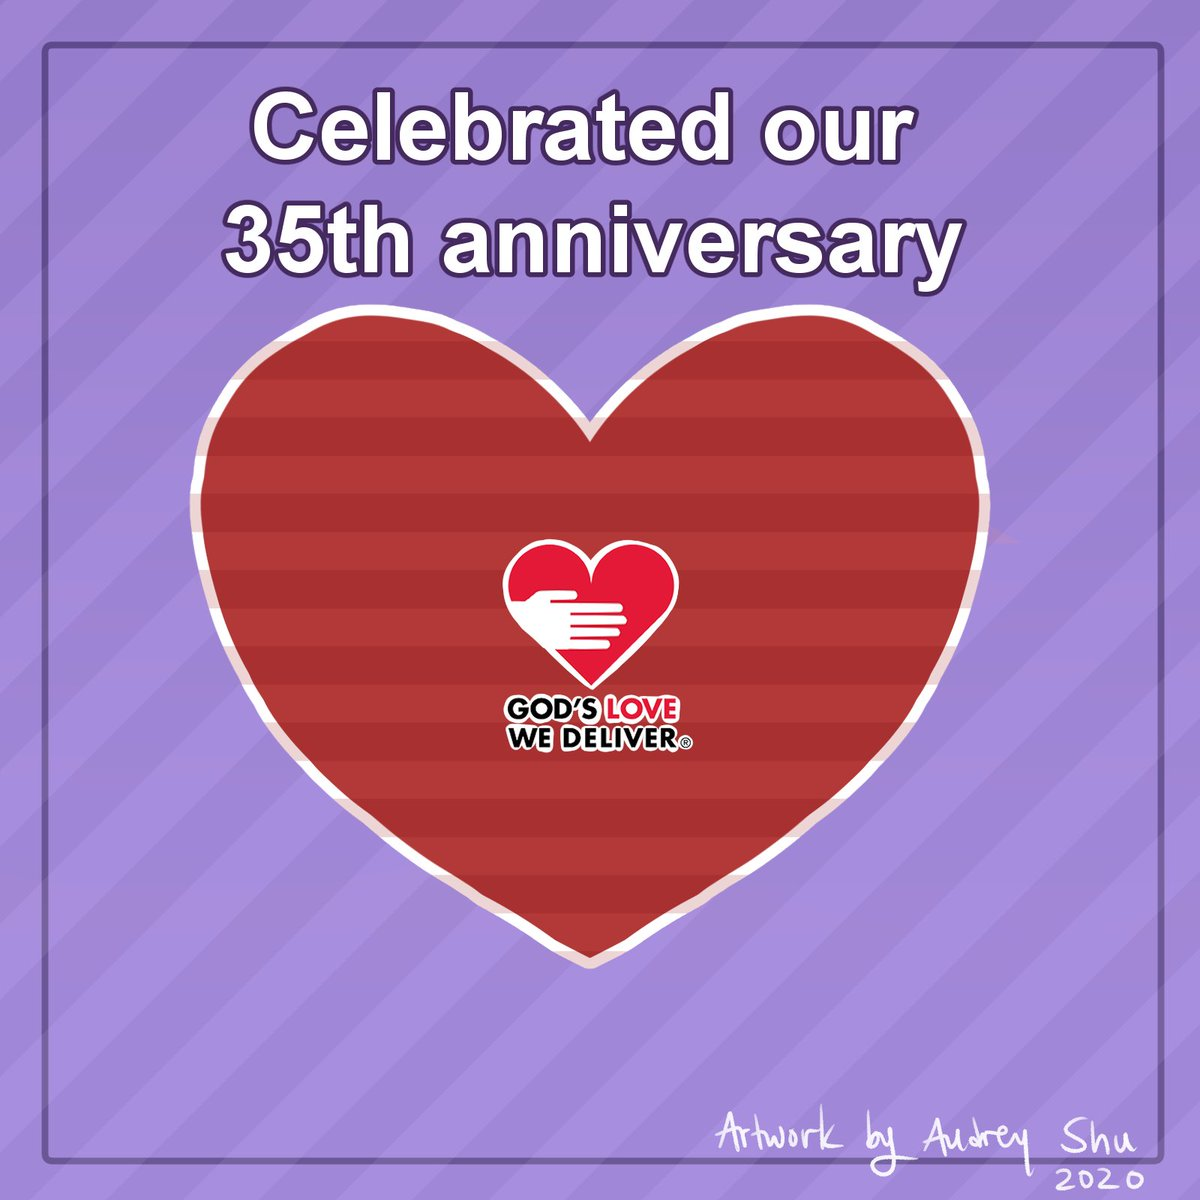 Celebrated our 35th anniversary. From our start at the height of the AIDS pandemic to today: New Yorkers living with serious illness know they can always count on God's Love We Deliver to deliver hope, dignity, and love, all wrapped up in delicious, nutritious meals.